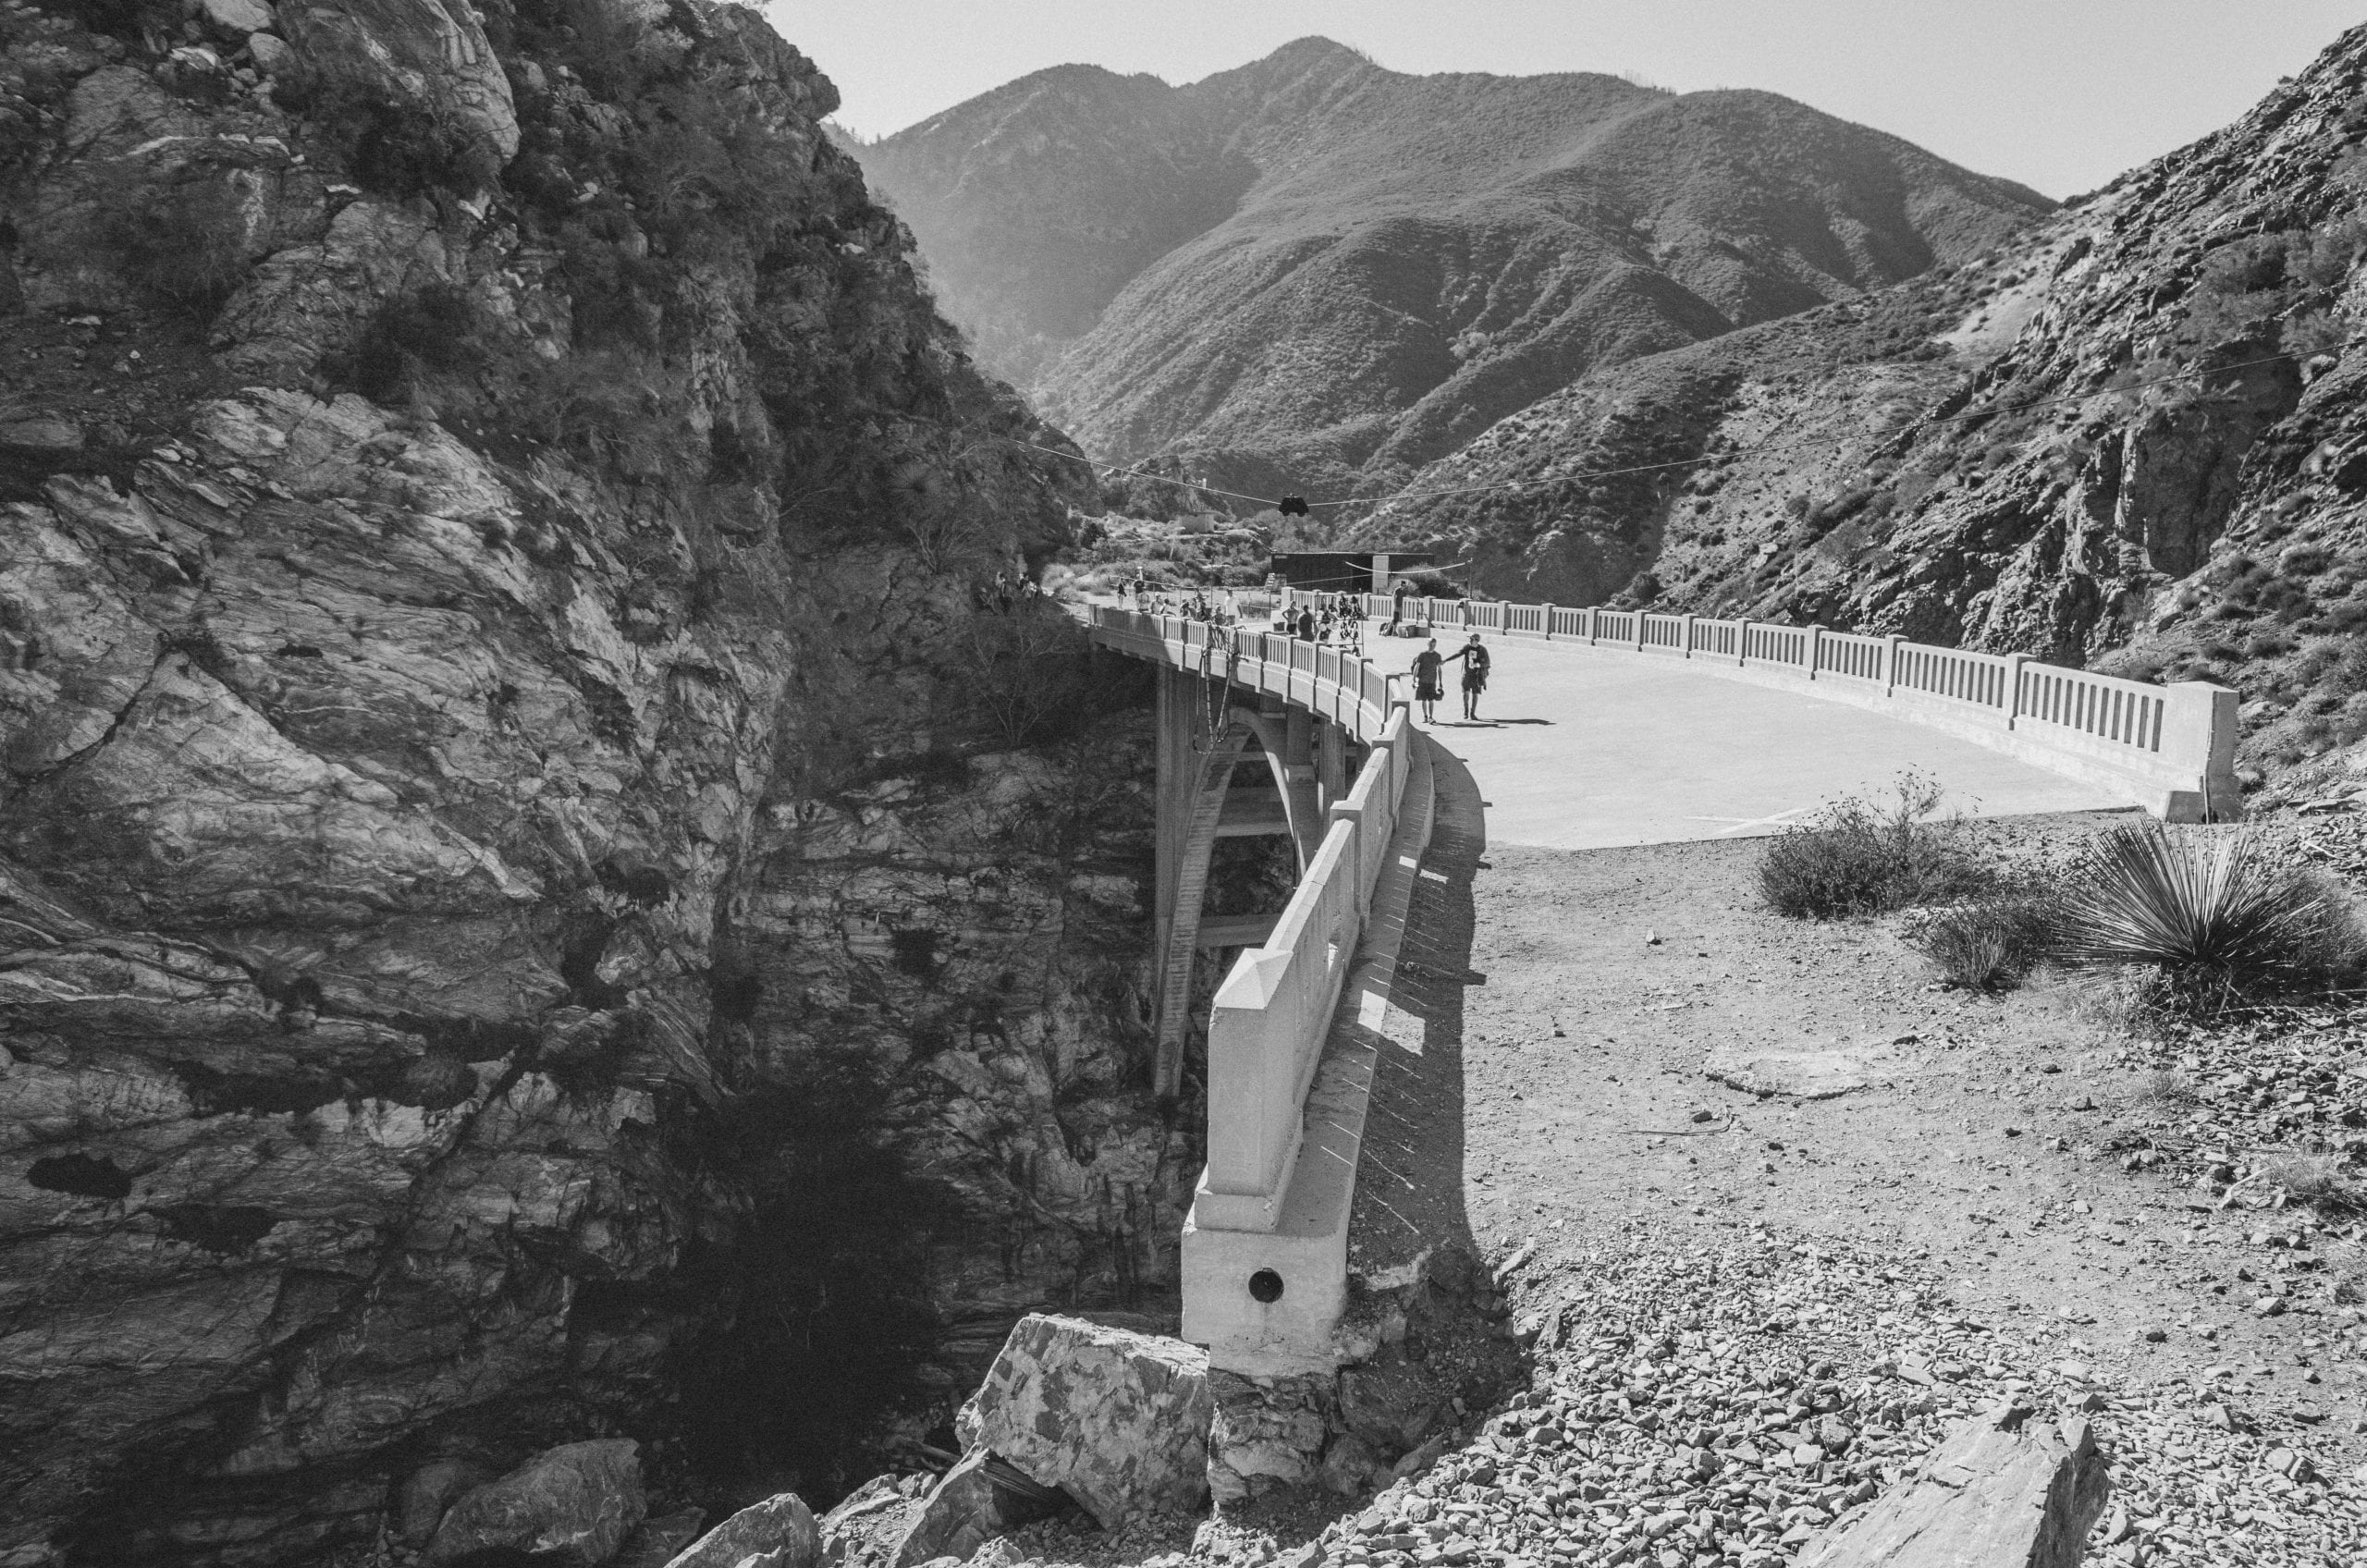 The Bridge to Nowhere on the East Fork of the San Gabriel River. Perhaps not the greatest place in the world to build a highway between Azusa and Wrightwood, thus the reason the highway was never finished -- much of it washed away in floods in the 1930s. Photo by Steve Hymon/Metro.